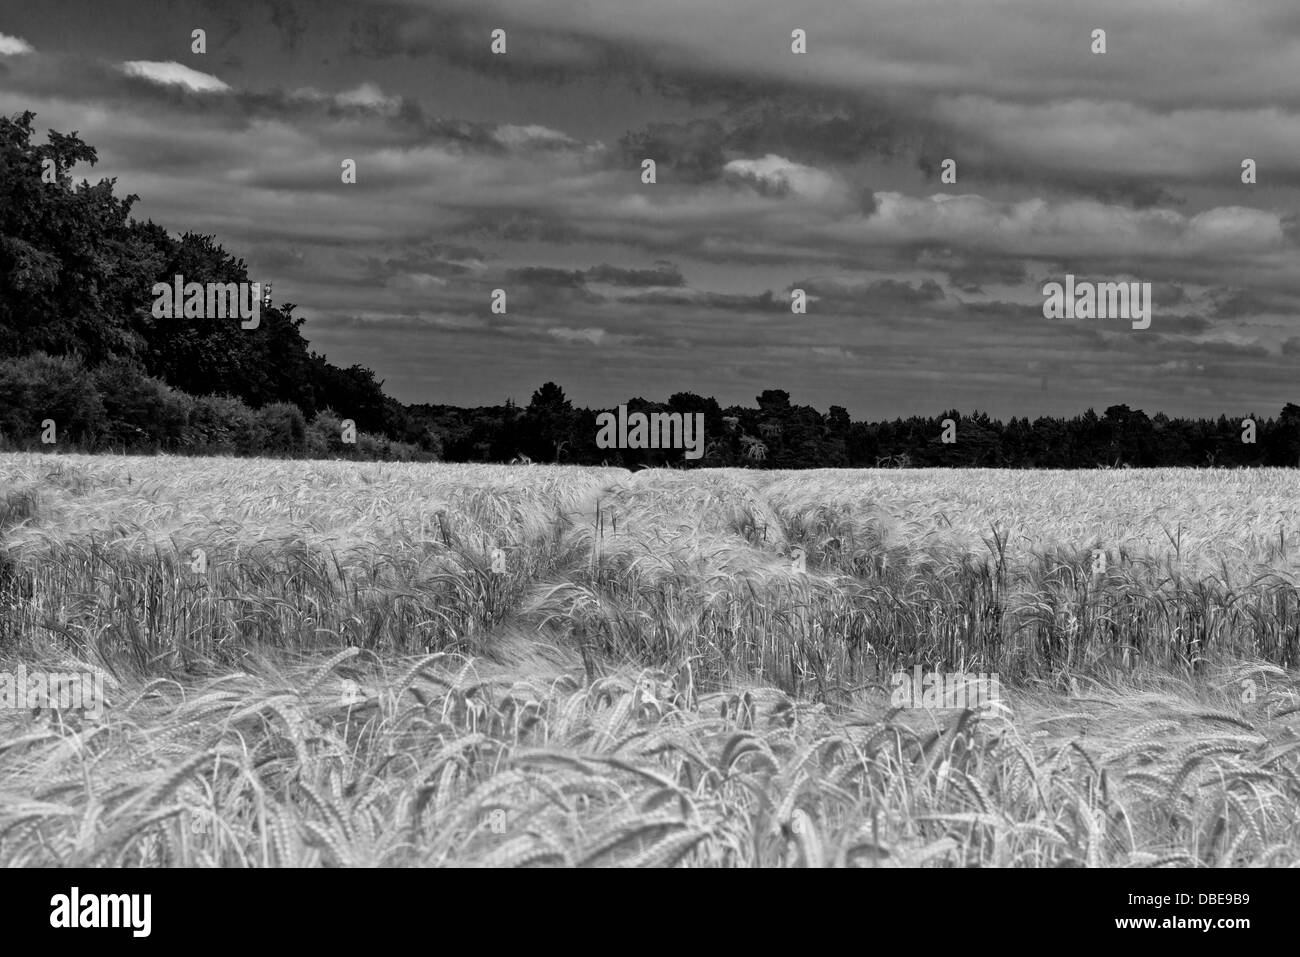 A field of barley the A135 to Thetford, Norfolk. England. (Black and white) - Stock Image